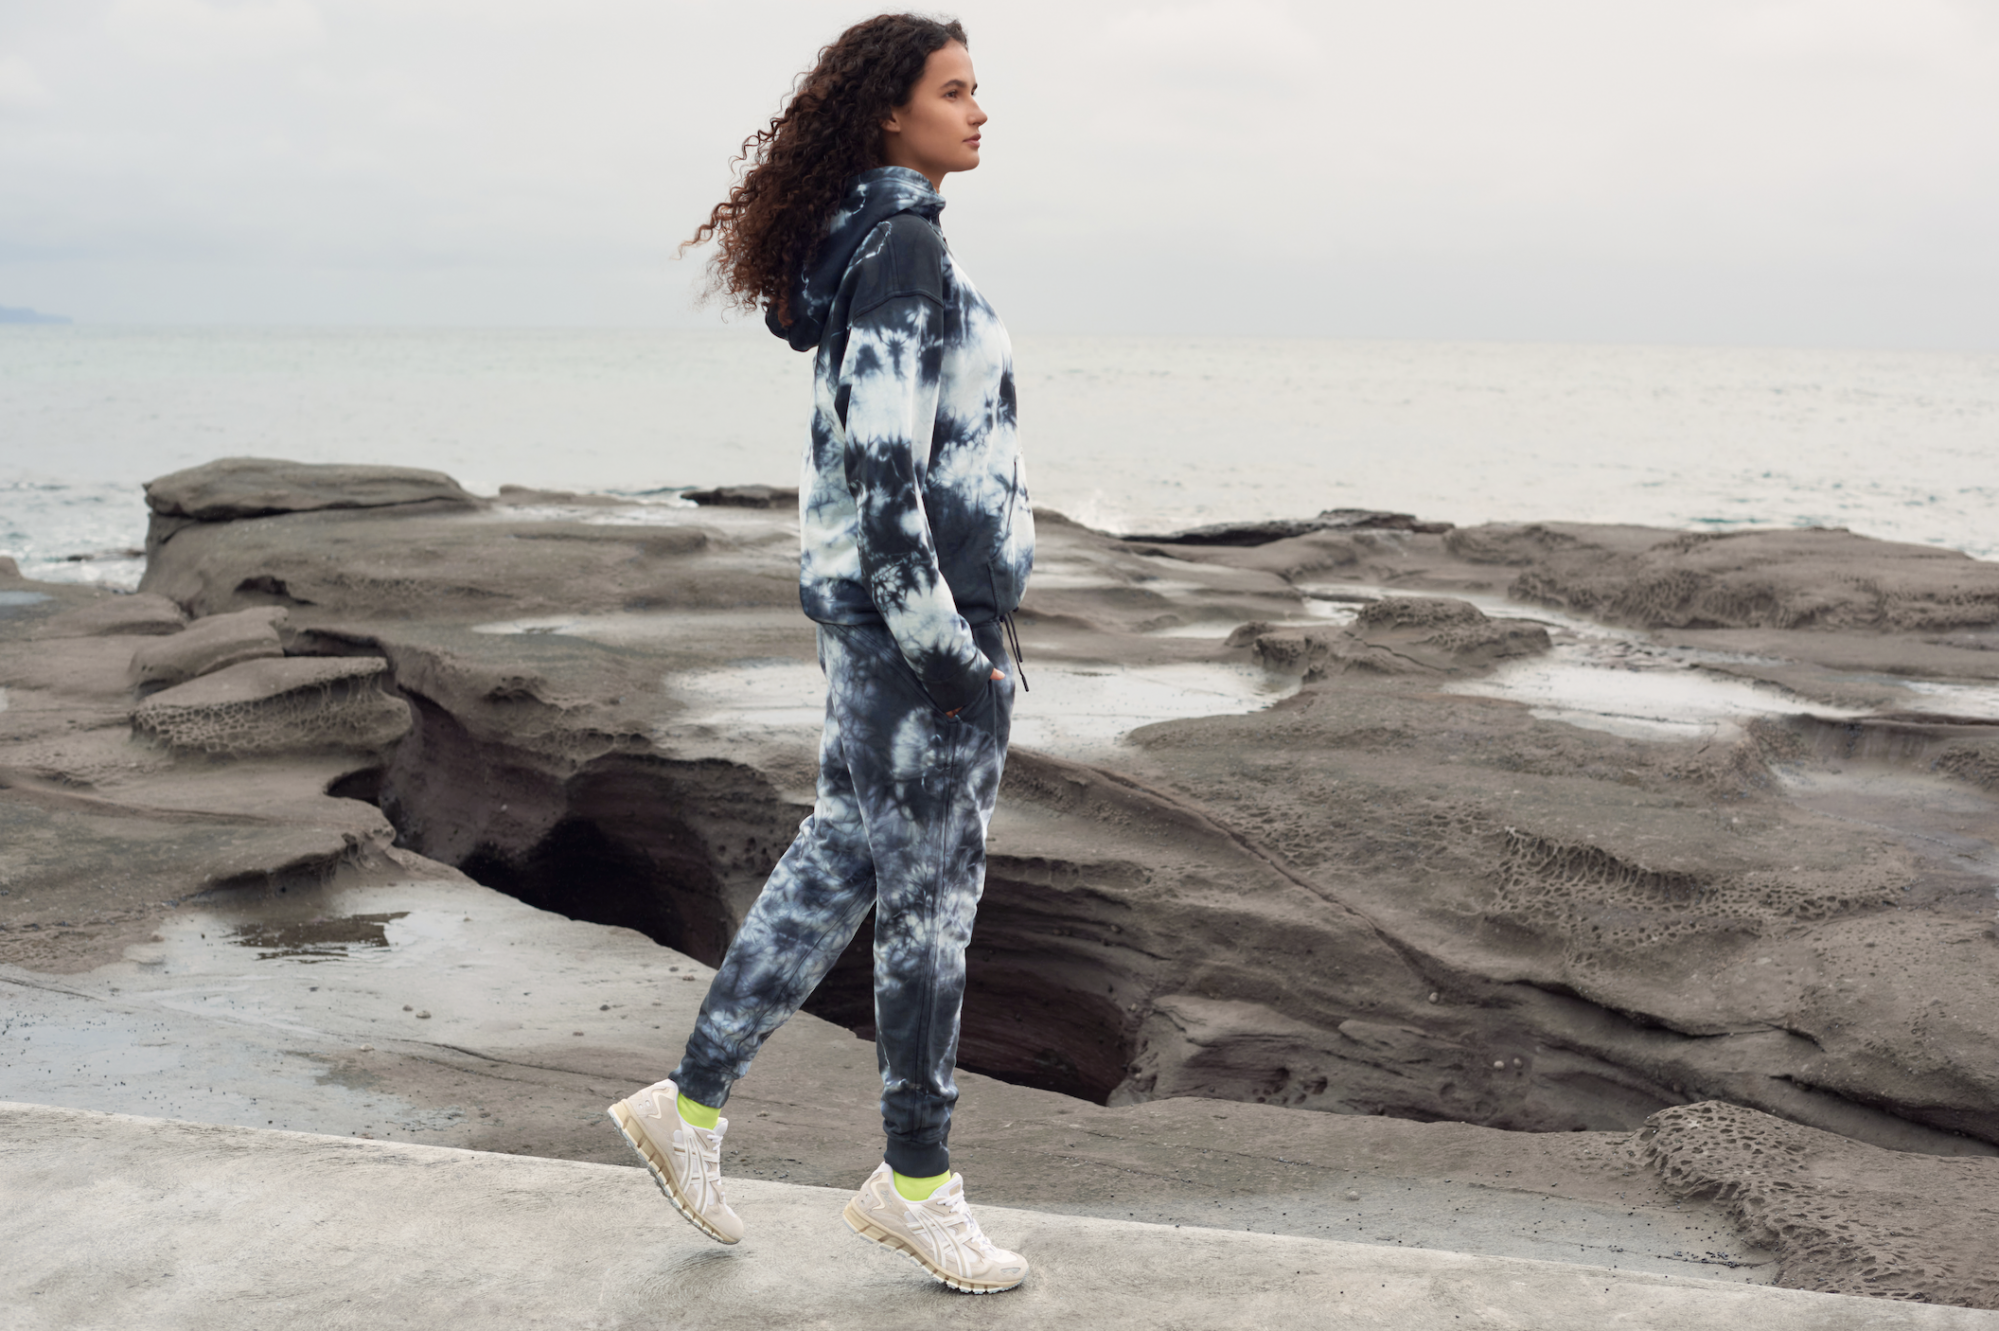 Lululemon's New Collection Features Dyes Upcycled From Fruit and Vegetable Waste